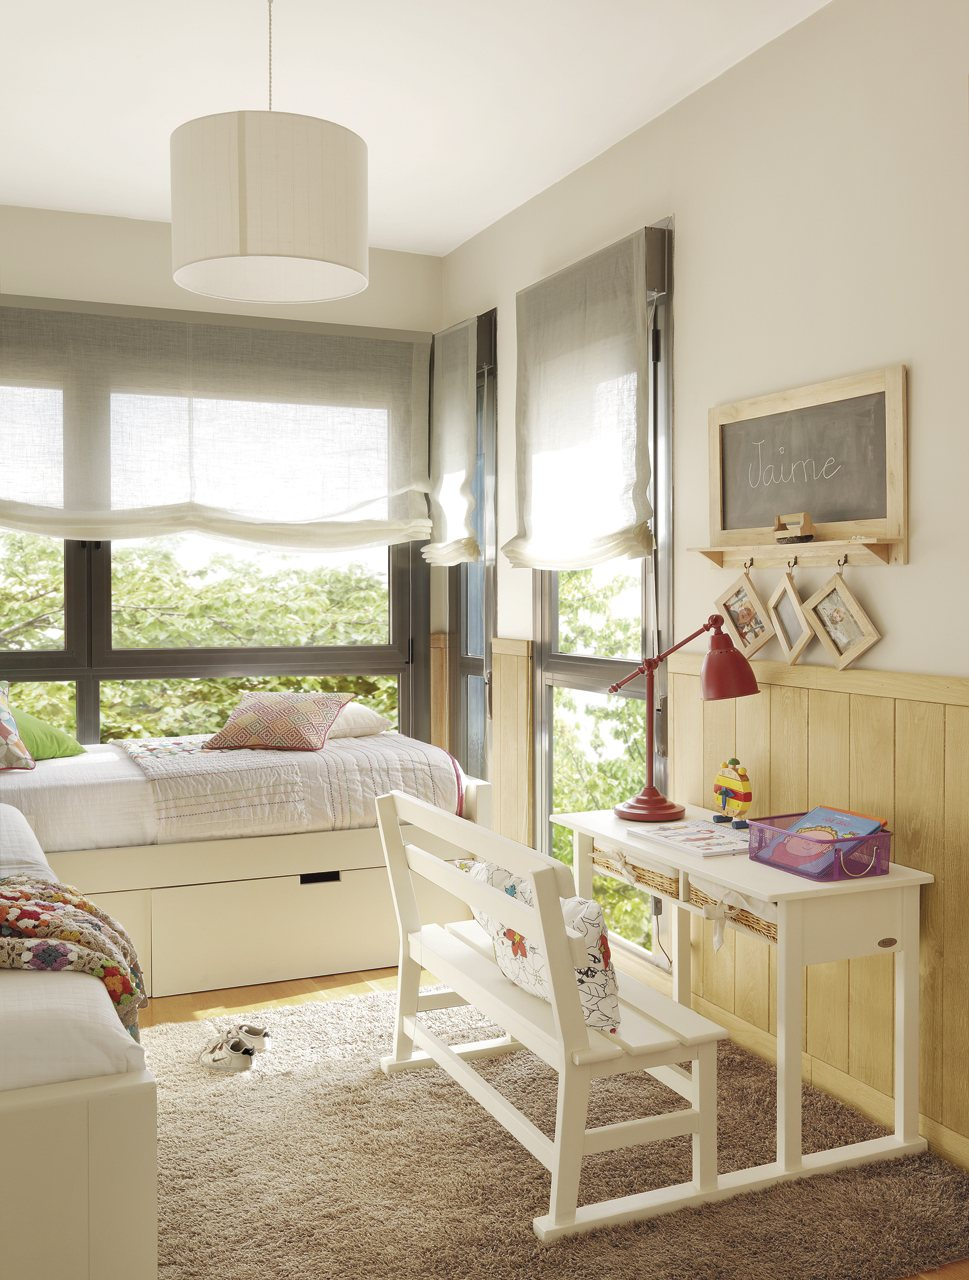 Ideas Creativas Para Decorar Un Cuarto Infantil